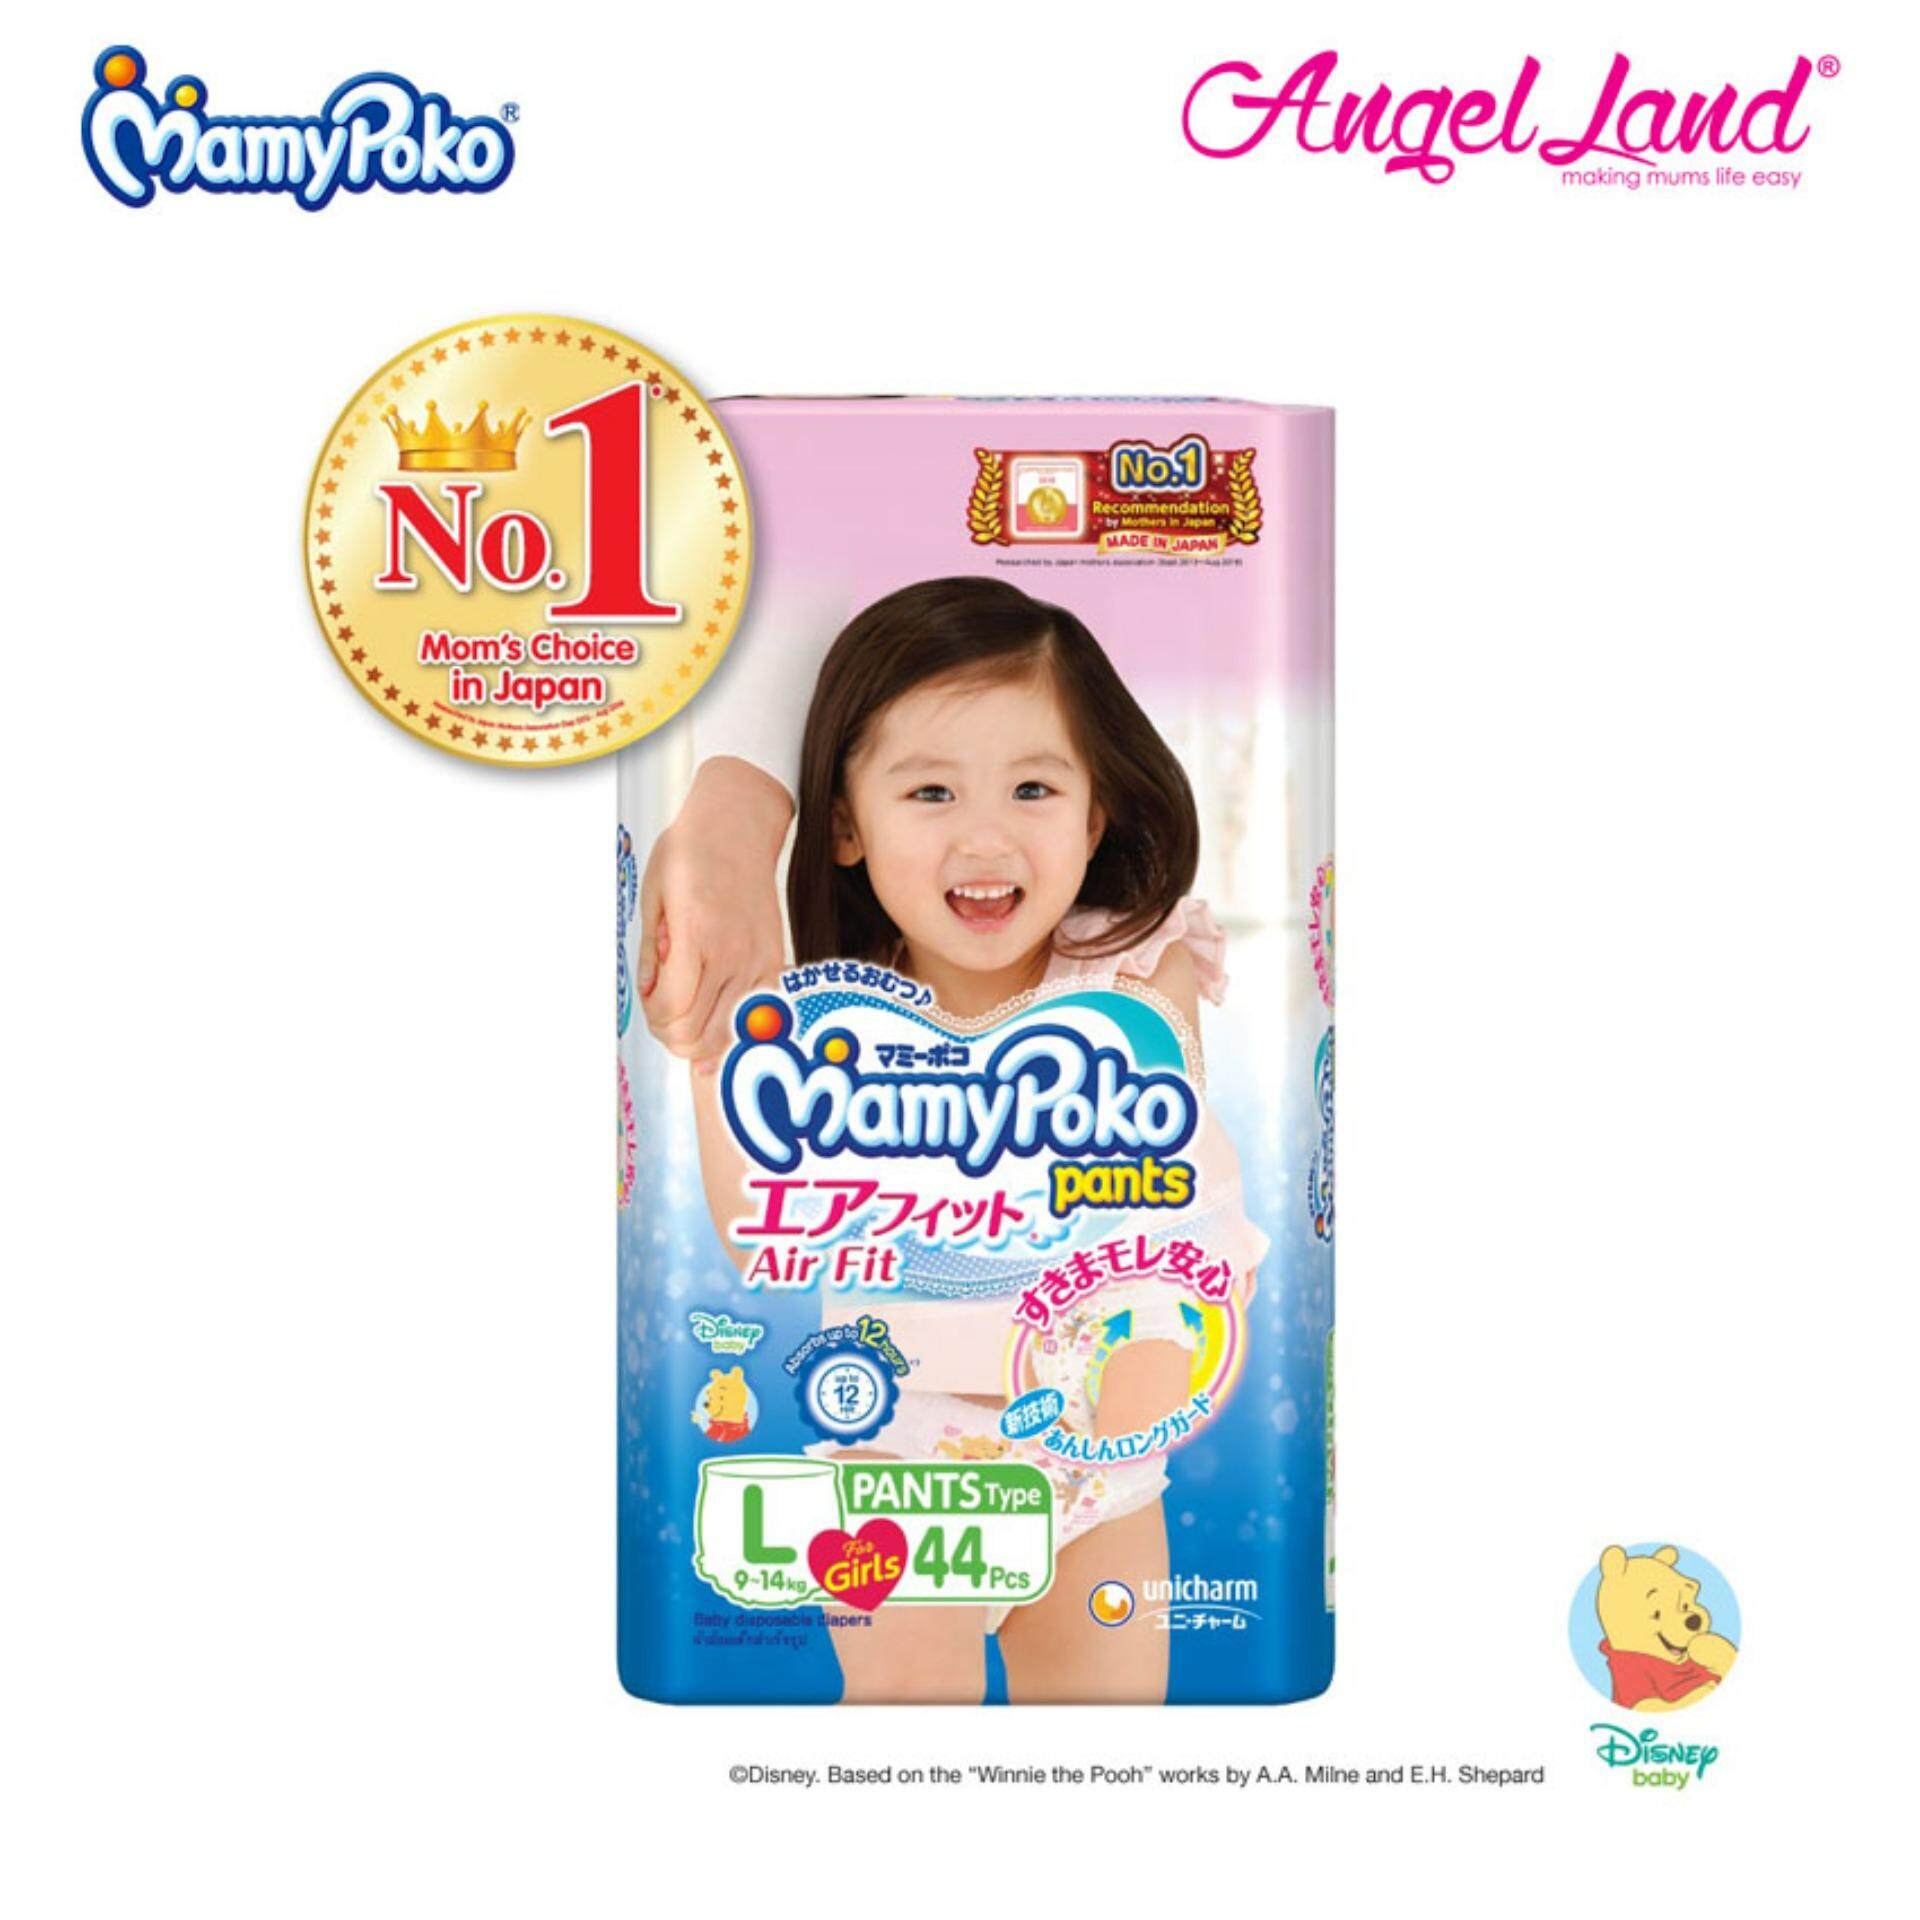 Mamypoko Buy At Best Price In Malaysia Pants Extra Soft Xl 30 Girls Air Fit Girl L44